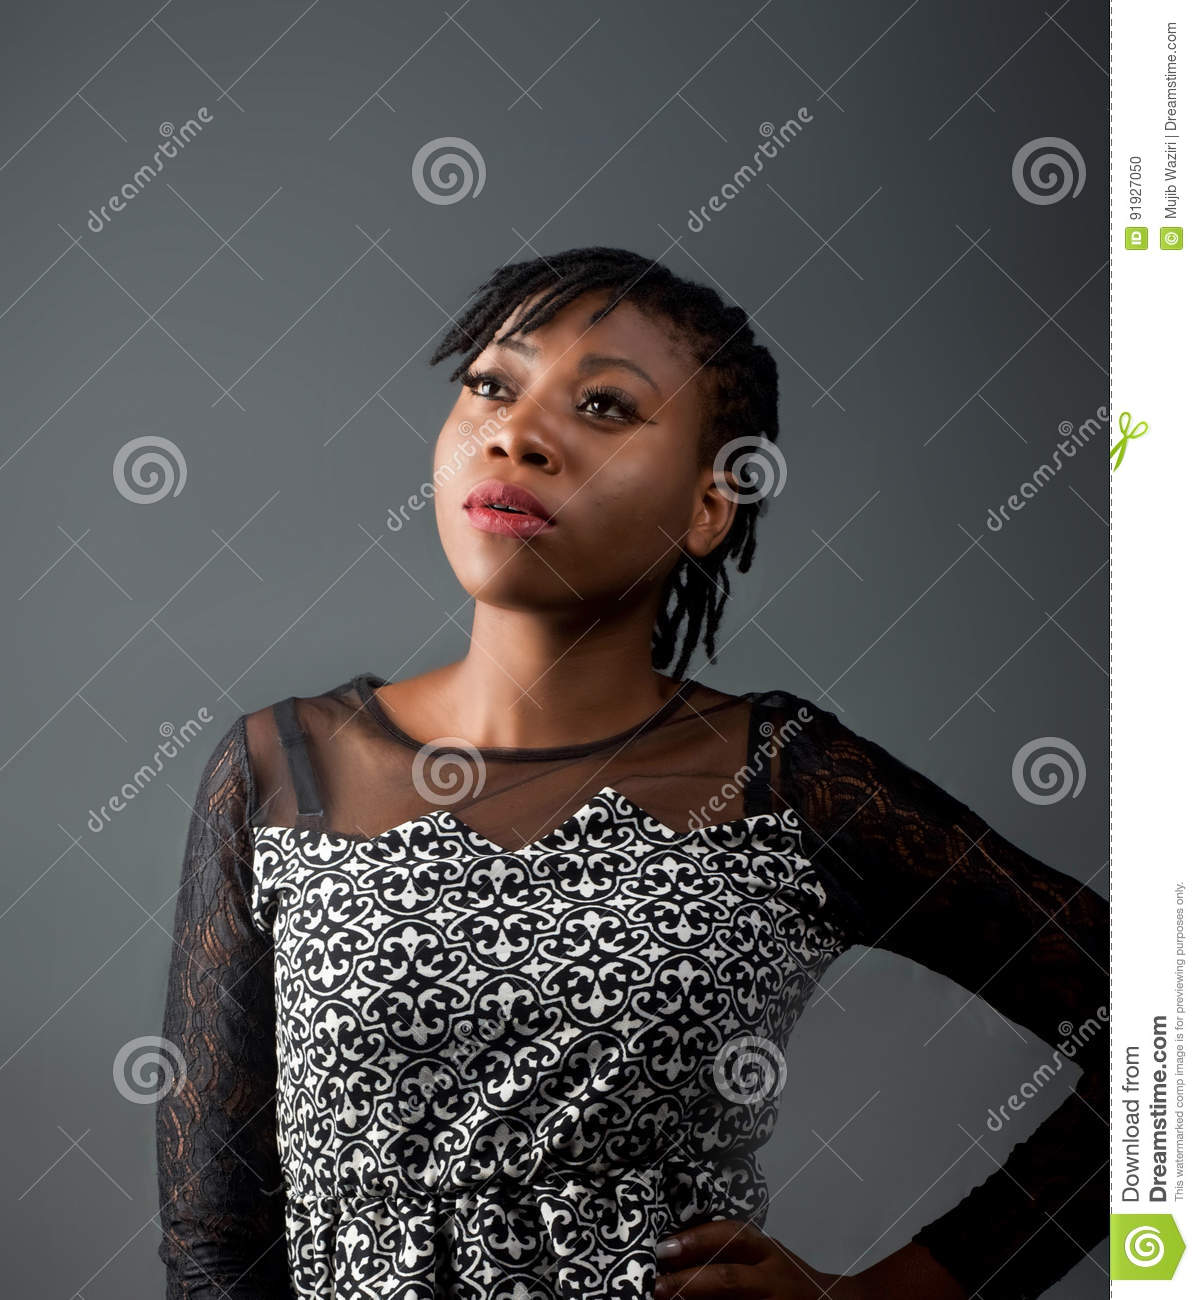 African lady posed away from the camera